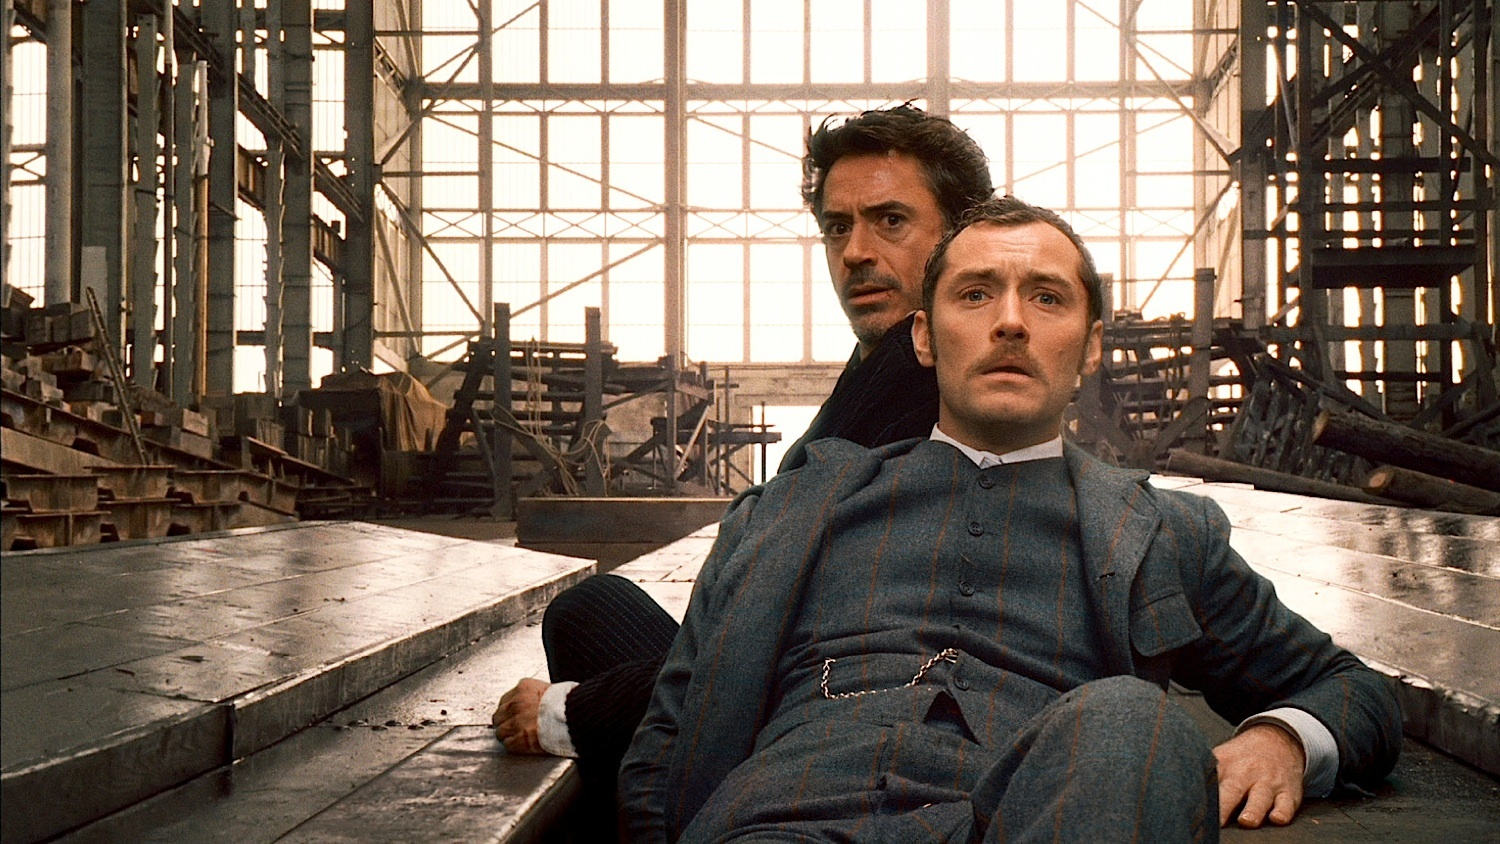 """SHH-SWTP-148 (L-r) ROBERT DOWNEY JR. as Sherlock Holmes and JUDE LAW as Dr. John Watson in Warner Bros. Pictures' and Village Roadshow Pictures' action-adventure mystery """"Sherlock Holmes,"""" distributed by Warner Bros. Pictures."""